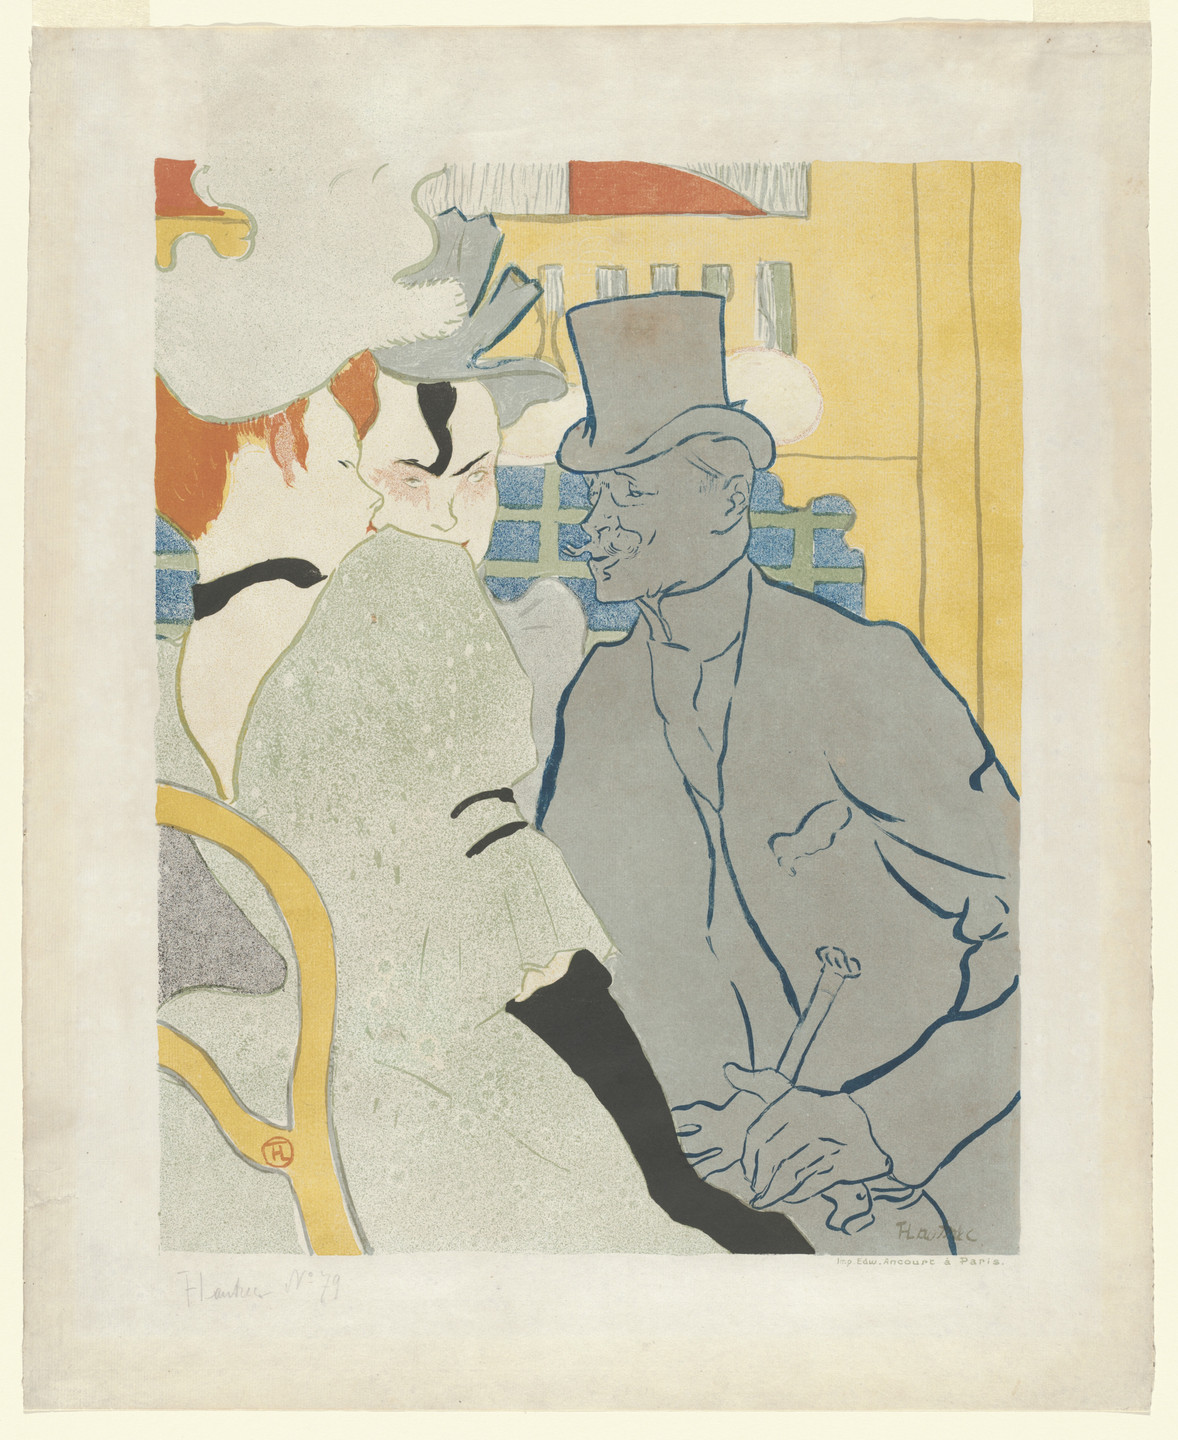 Henri de Toulouse-Lautrec. L'Anglais au Moulin Rouge (Englishman at the Moulin Rouge). 1892